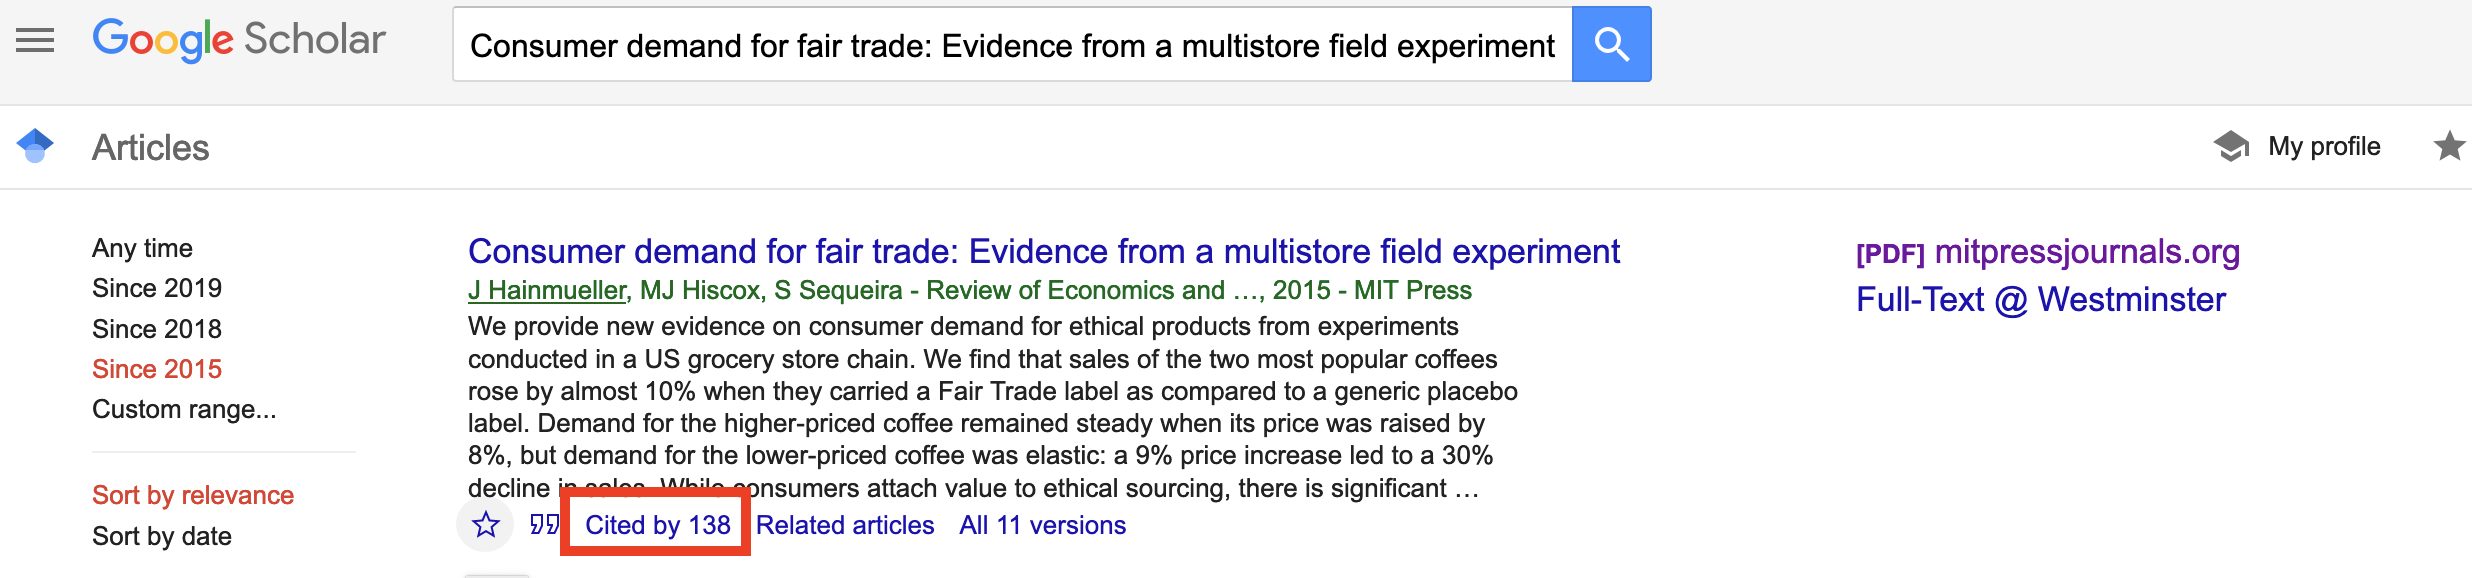 Google scholar search with Cited by link (below title and summary) highlighted